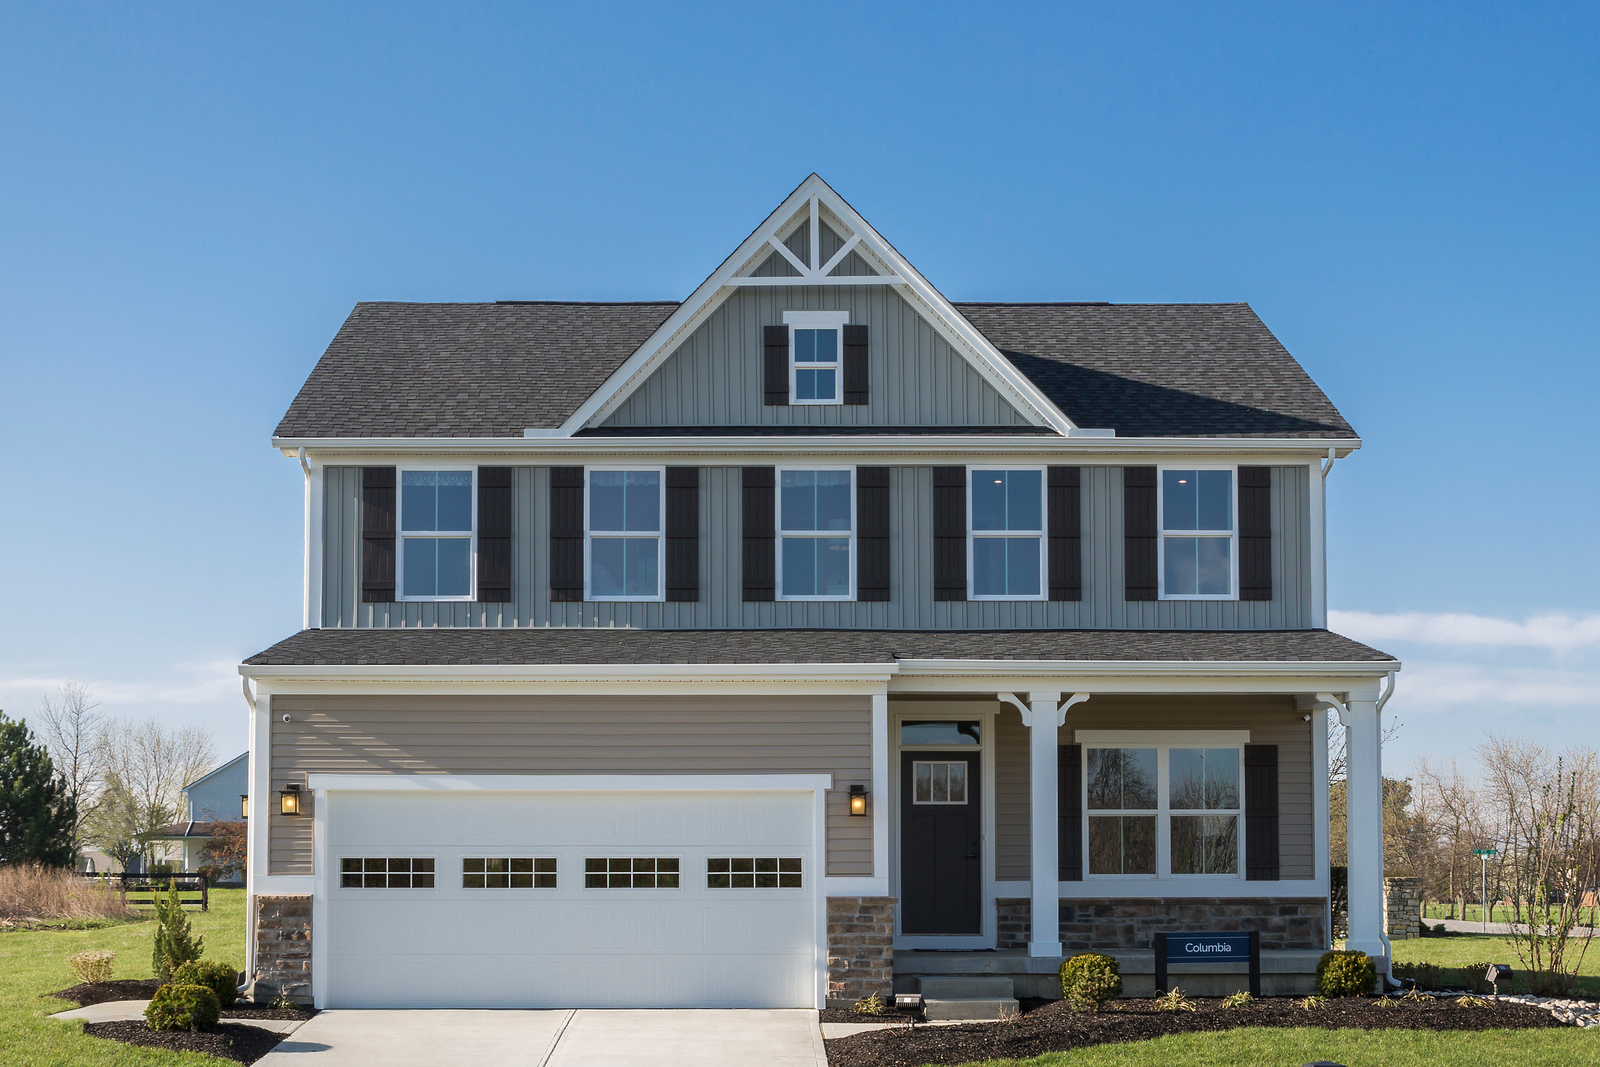 new homes for sale at stone ridge estates in cincinnati oh within